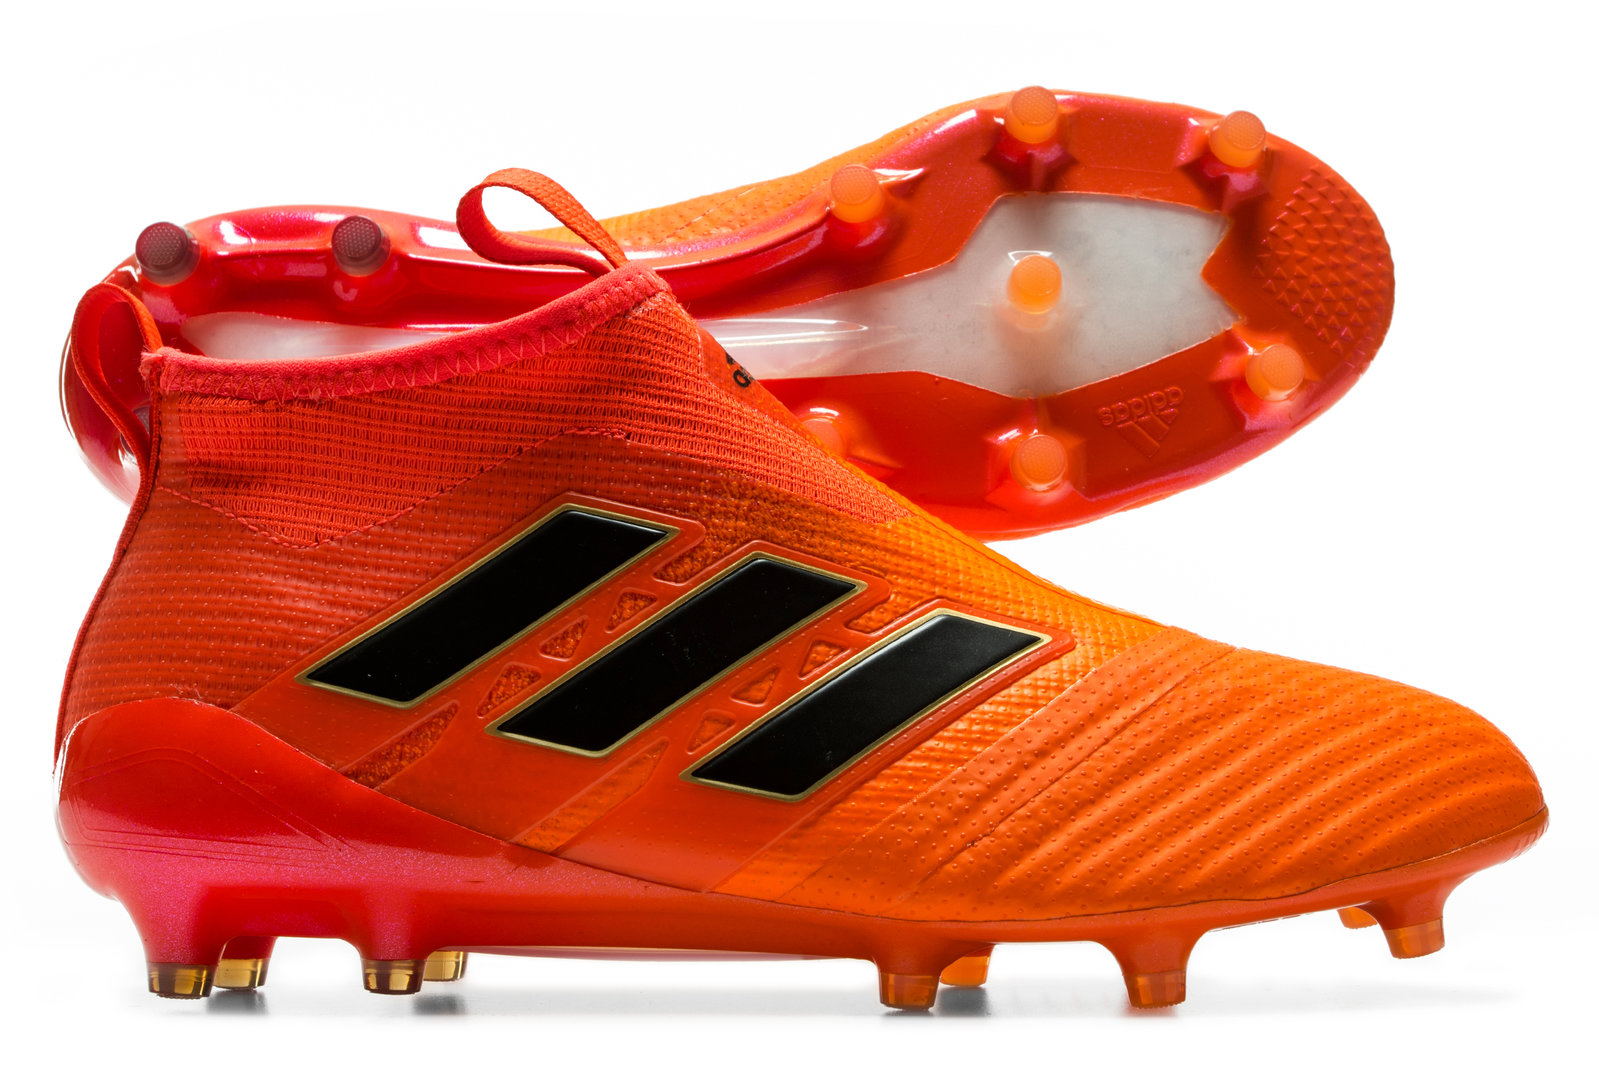 Image of Ace 17+ Purecontrol FG Football Boots